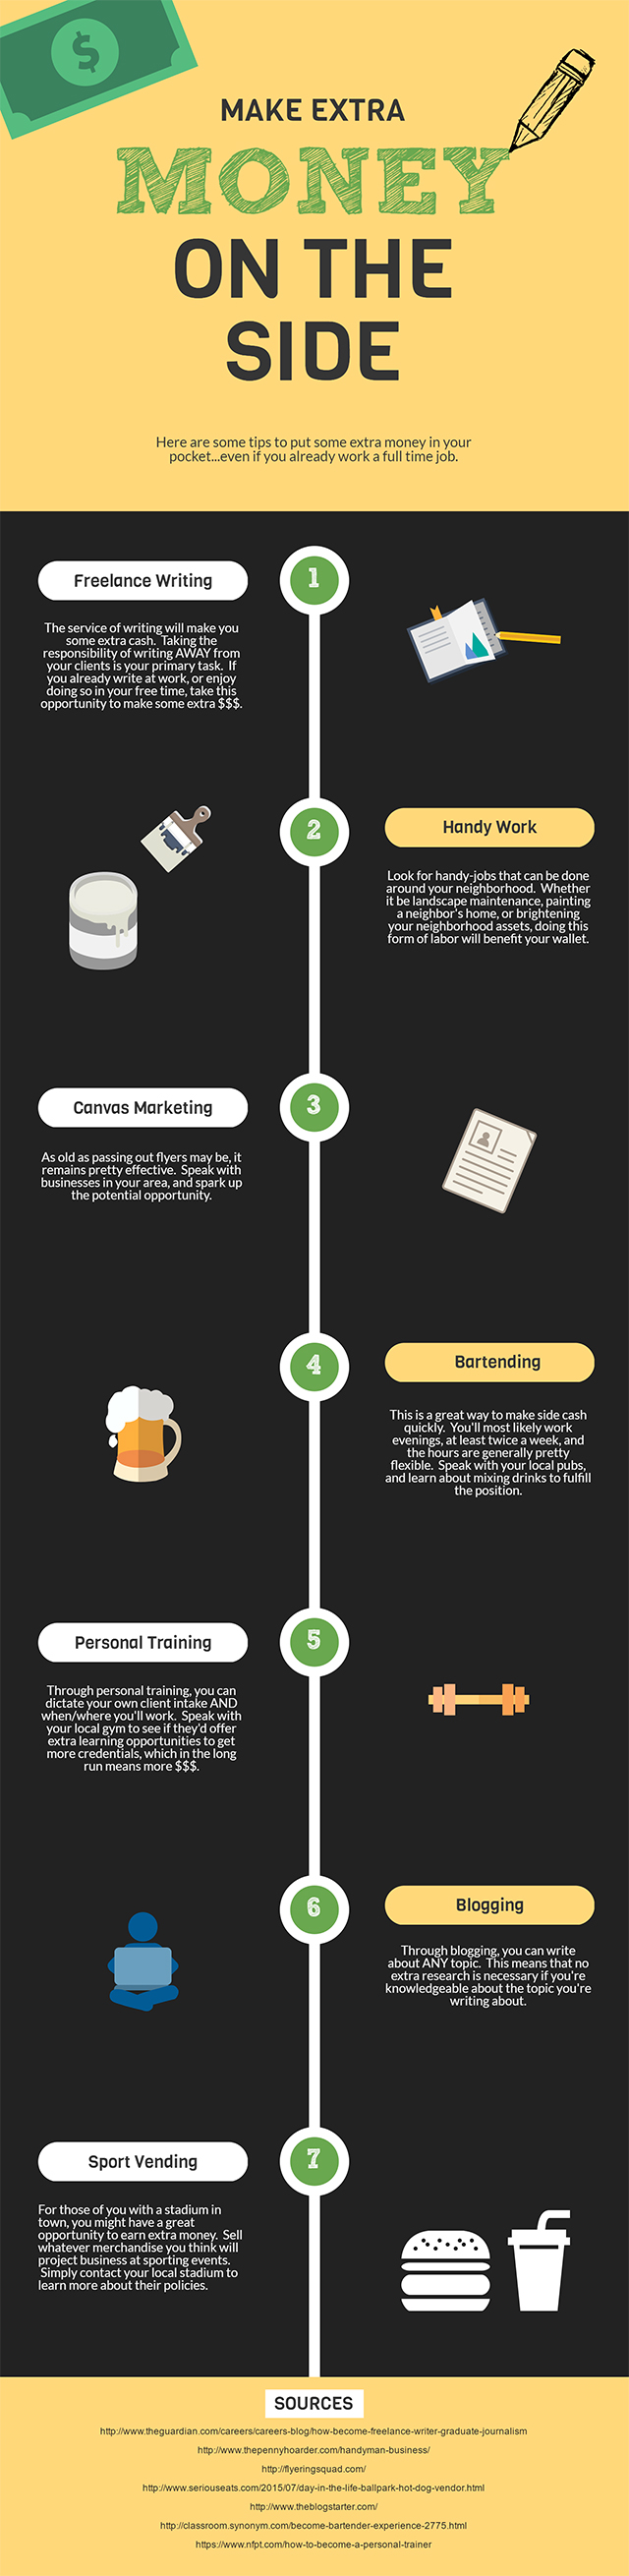 https://financialwellness.org/wp-content/uploads/2016/04/7-Hustling-Ways-to-Make-Extra-On-The-Side-Infographic-1.jpg